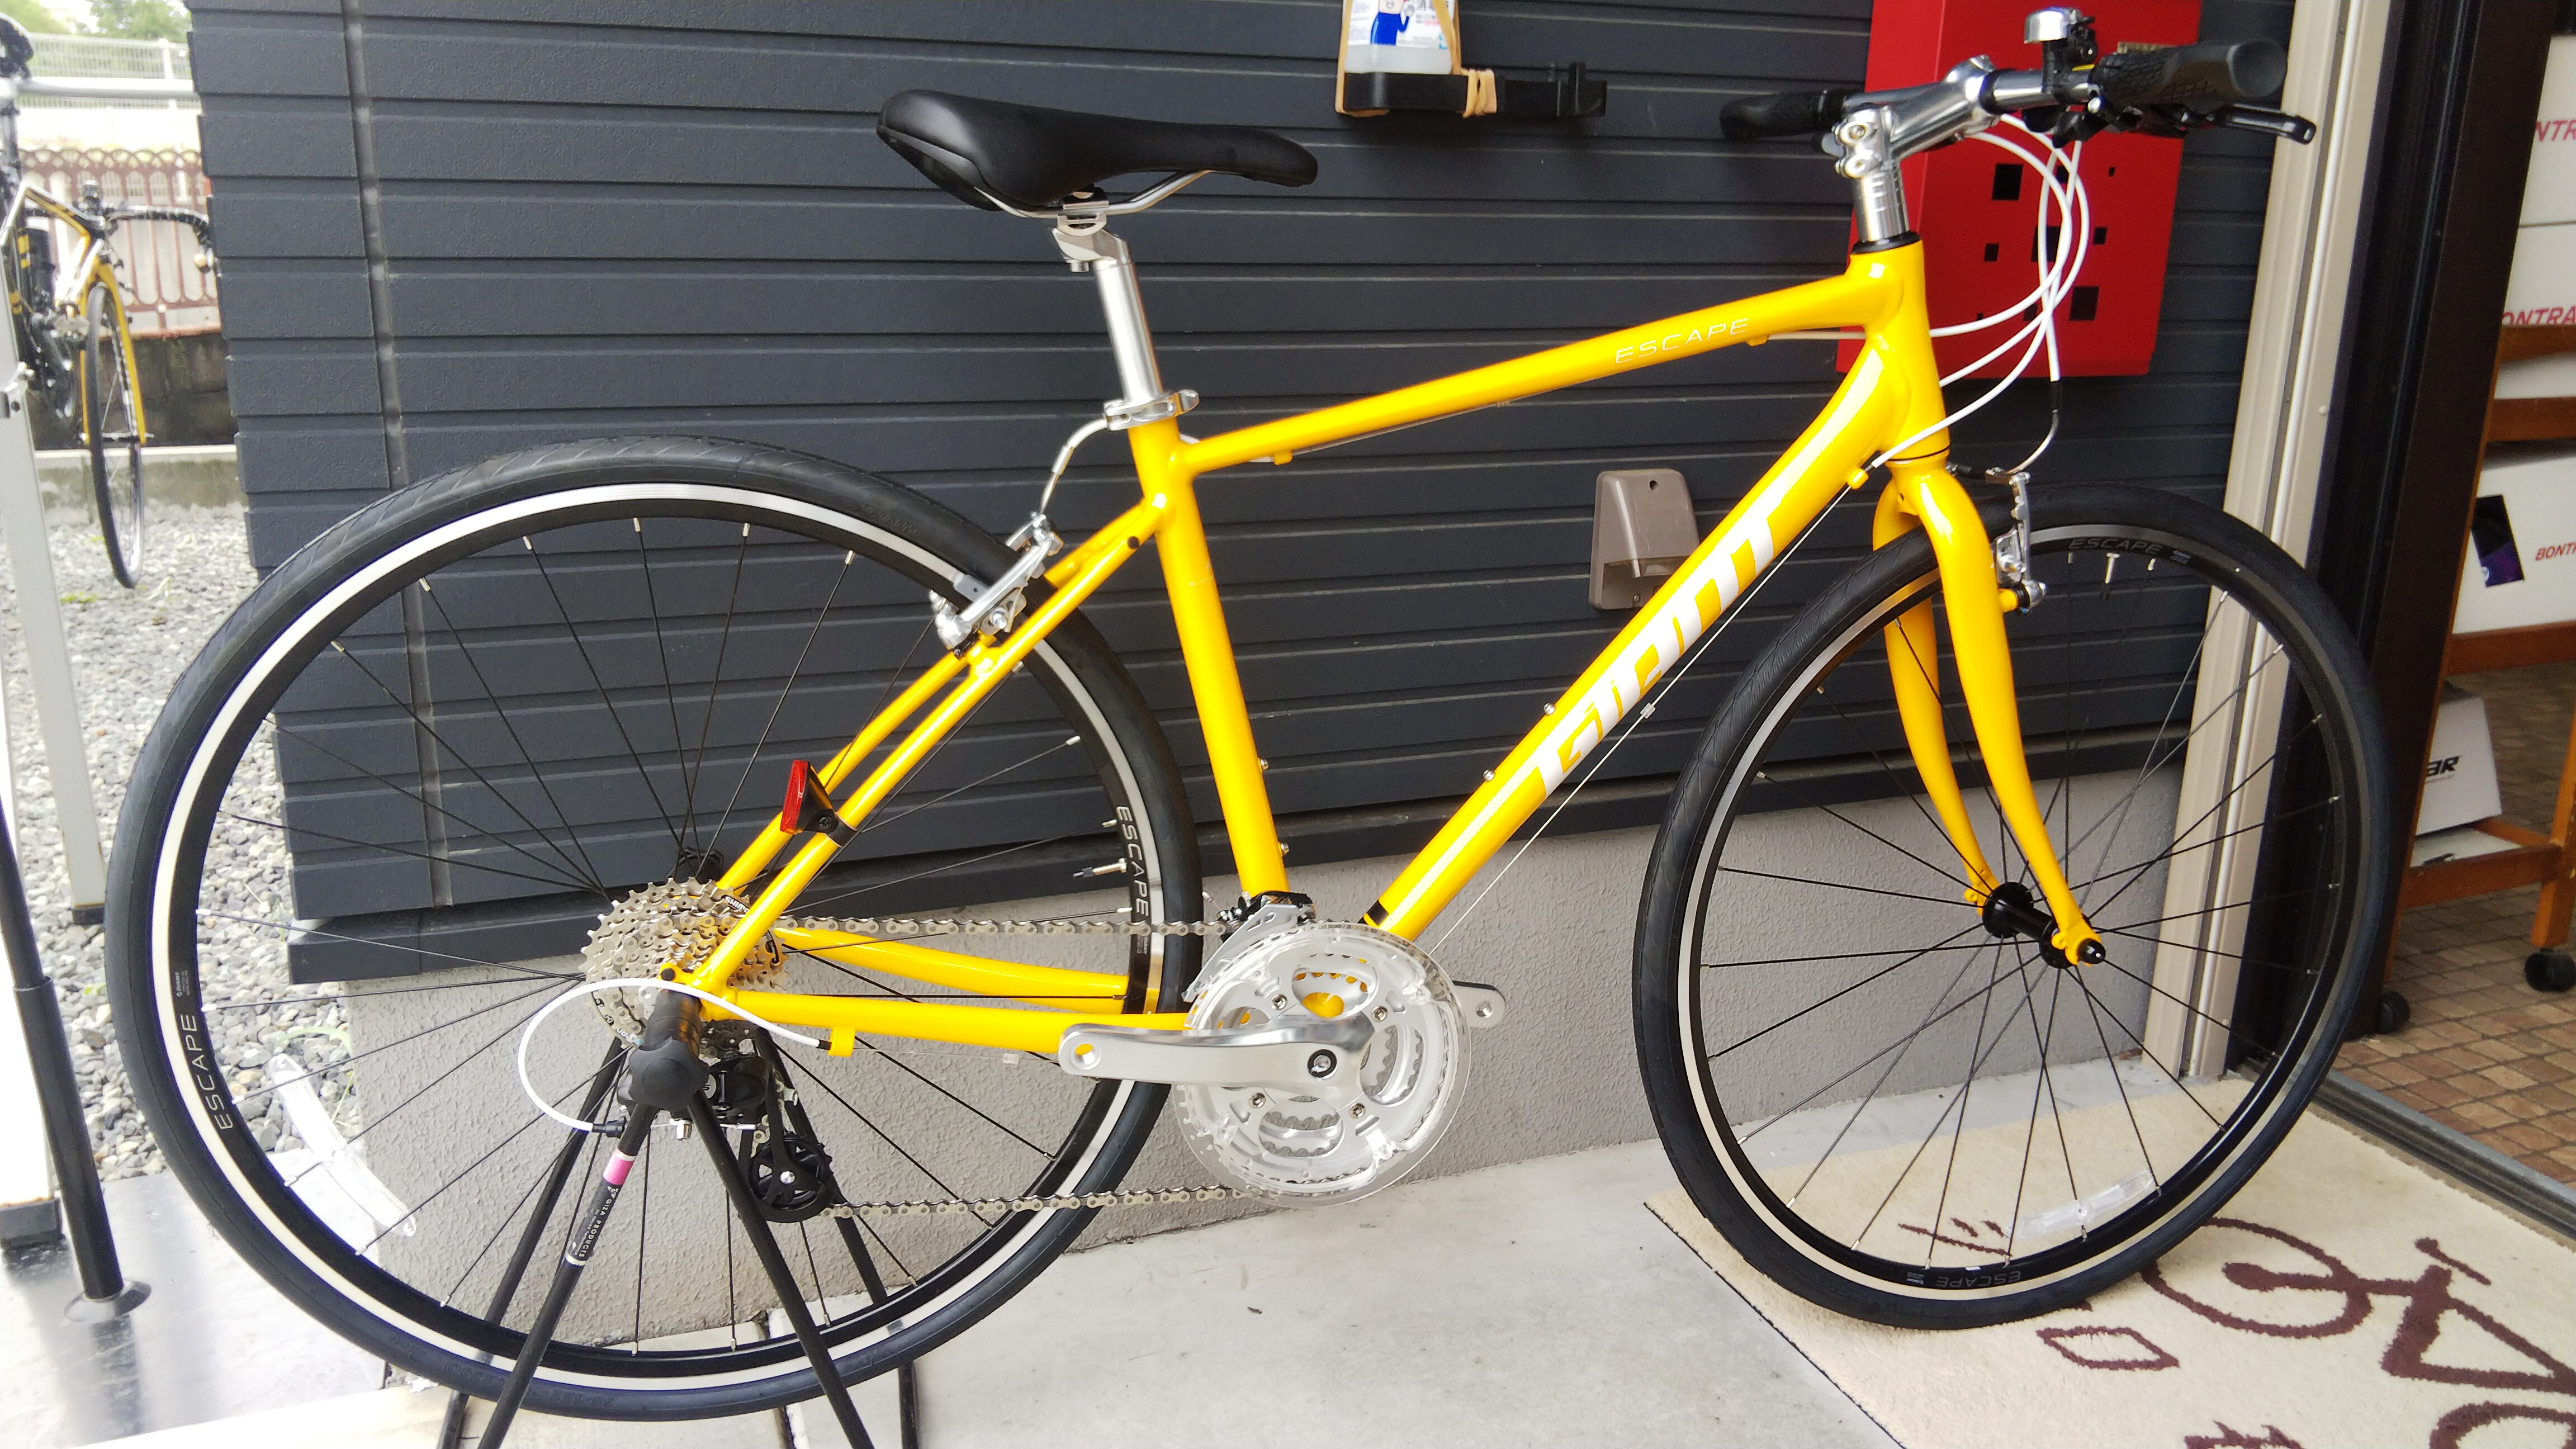 http://www.cyclomotohara.com/products/images/DSC_3123.JPG